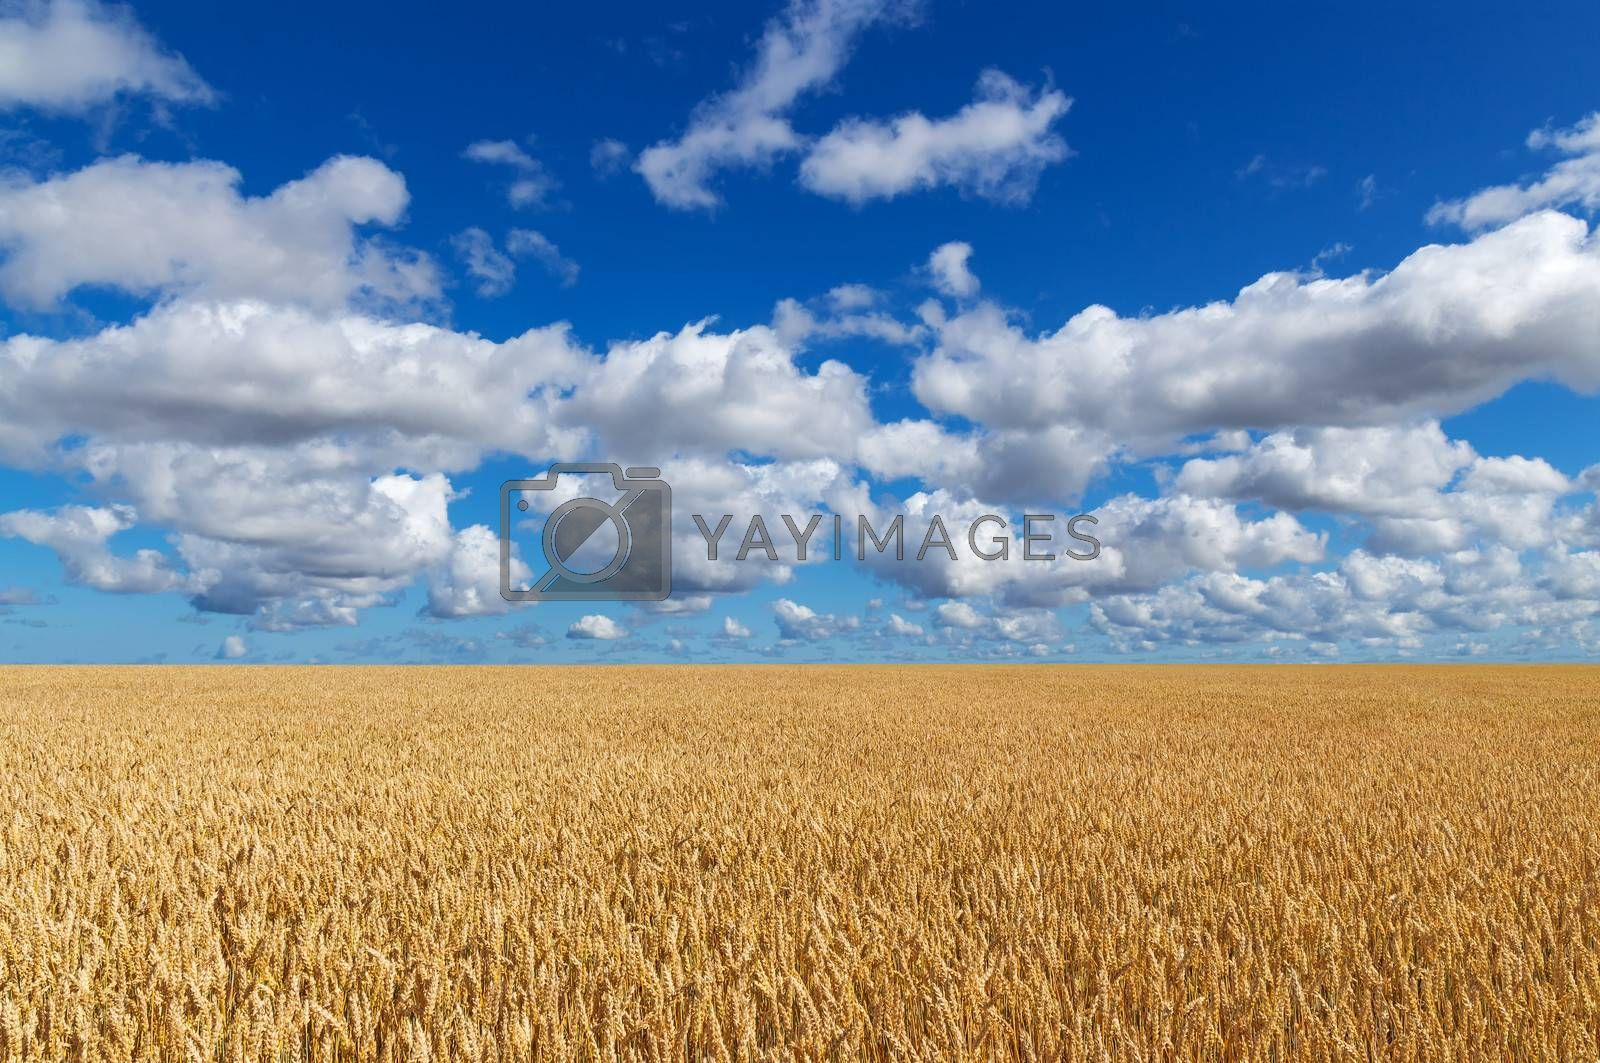 Golden wheat field, under blue sky with clouds.